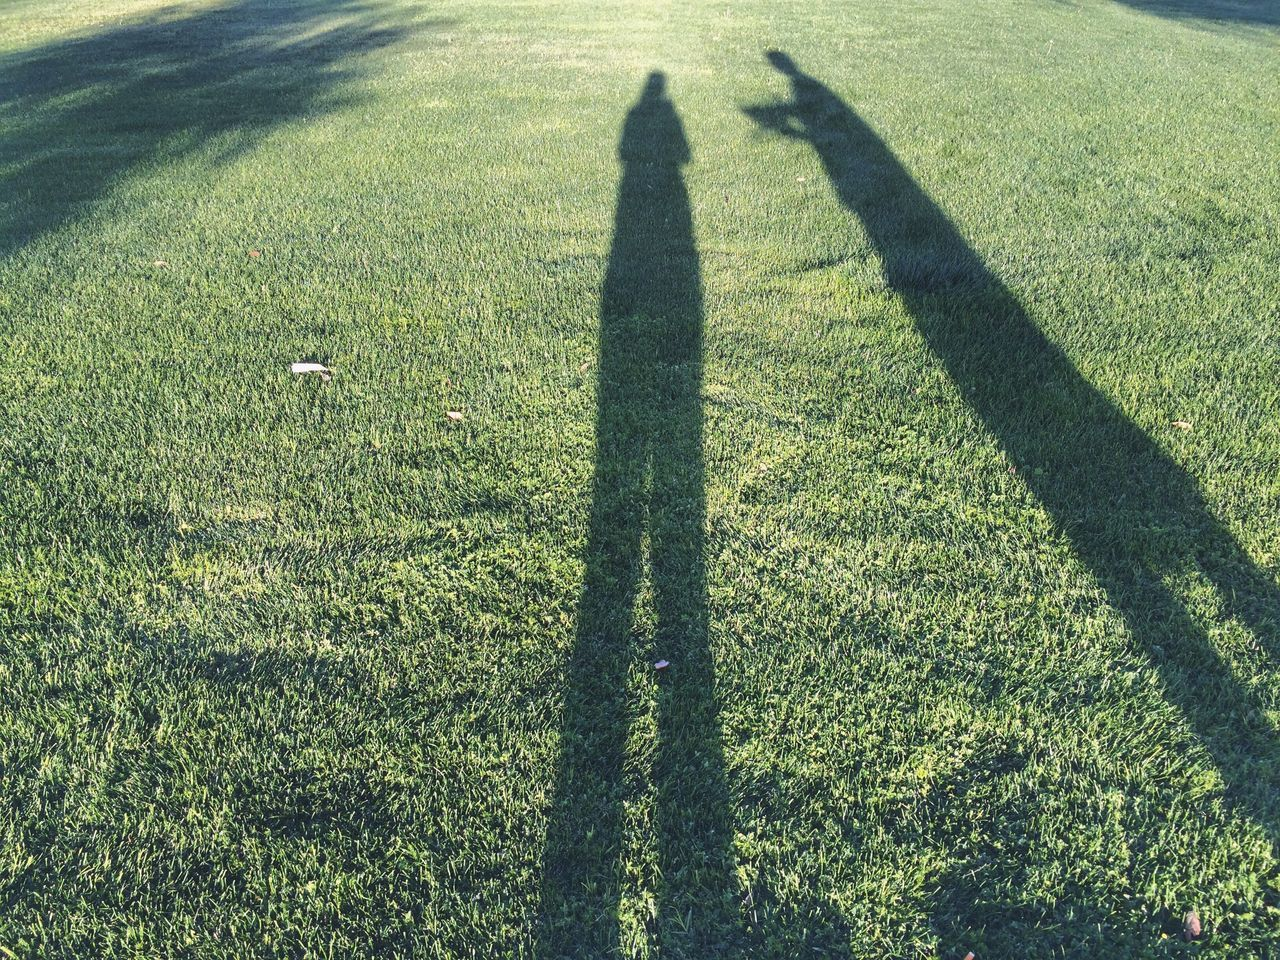 Shadow Of People On Grassy Field In Park During Sunny Day